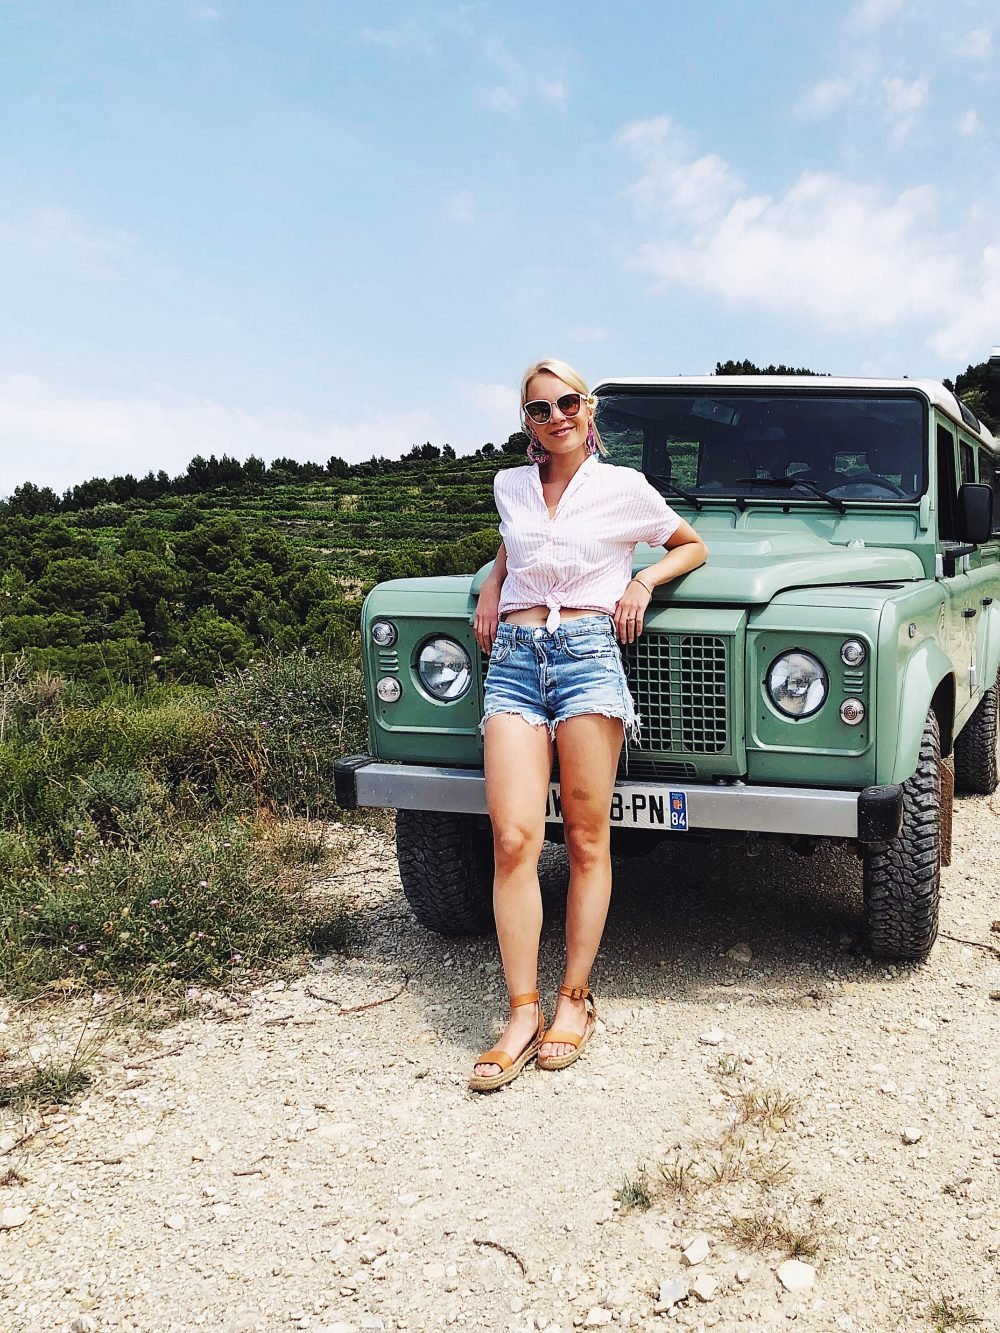 monique in front of a green jeep